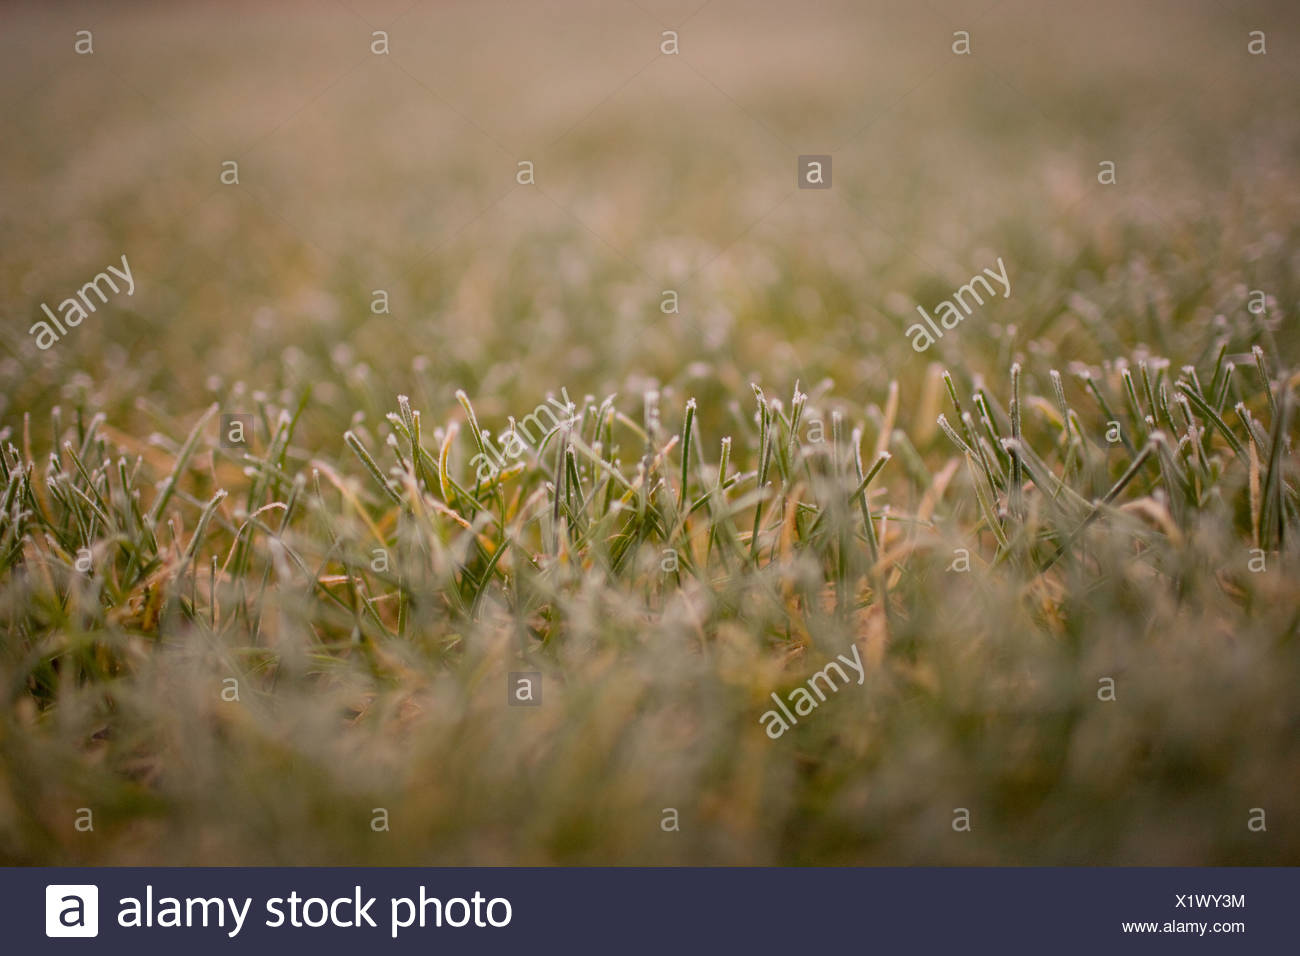 Frost on glass, close up - Stock Image